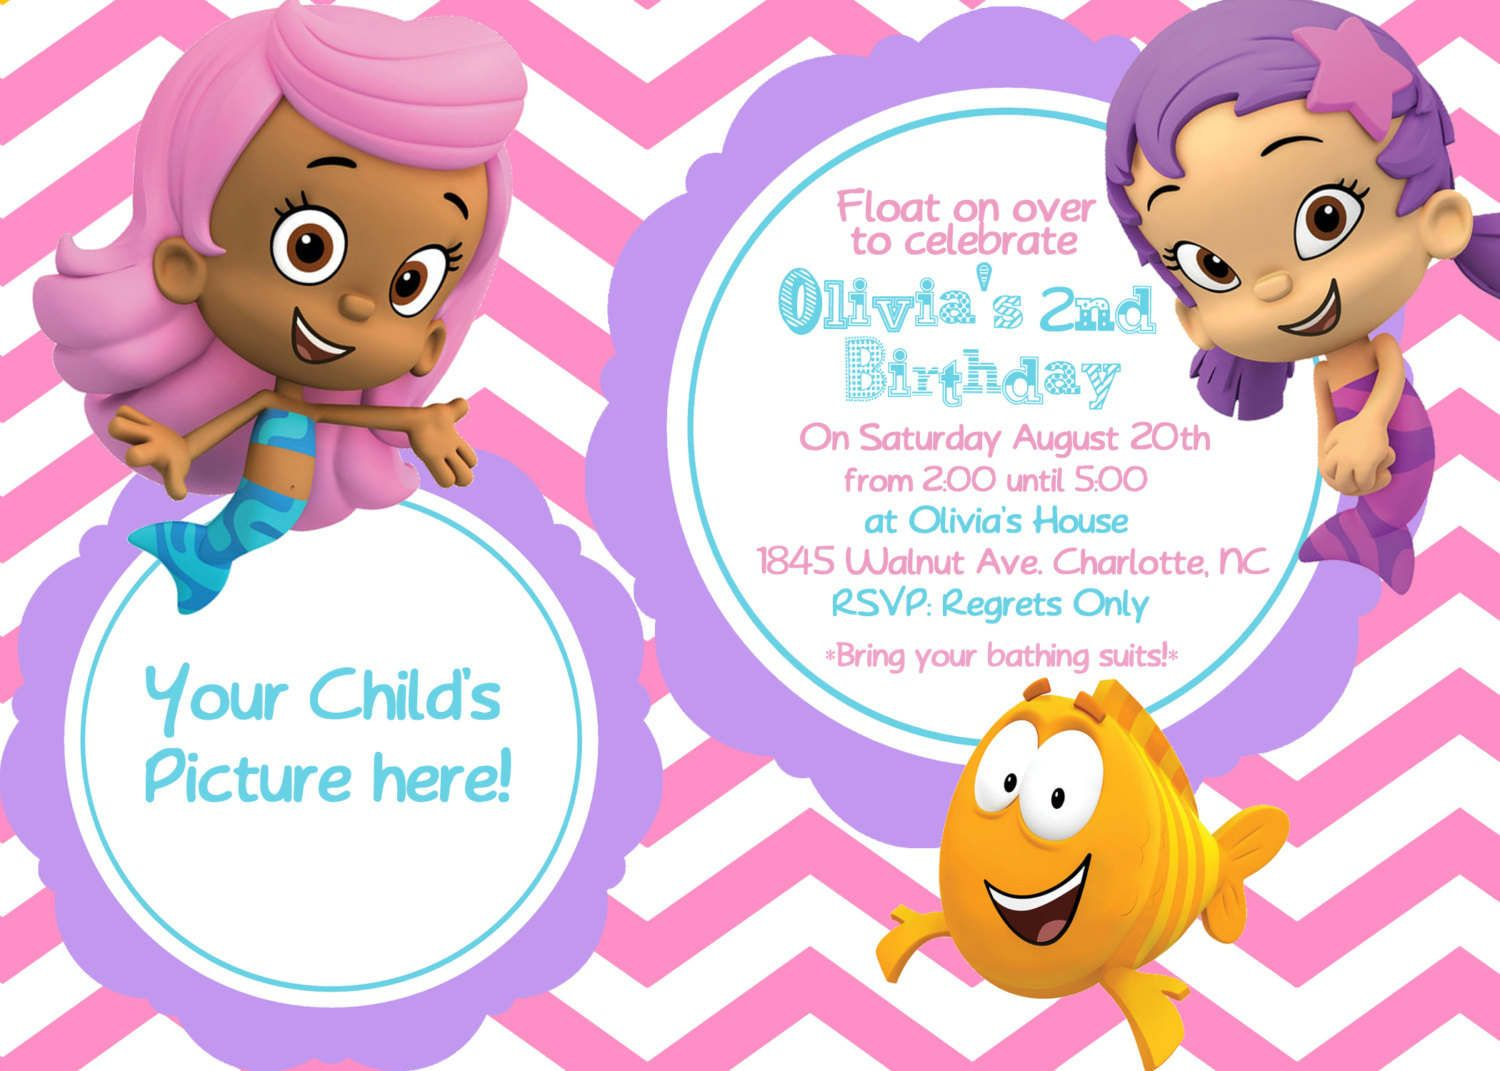 Printable Birthday Invitation Cards For Adults | something to try ...